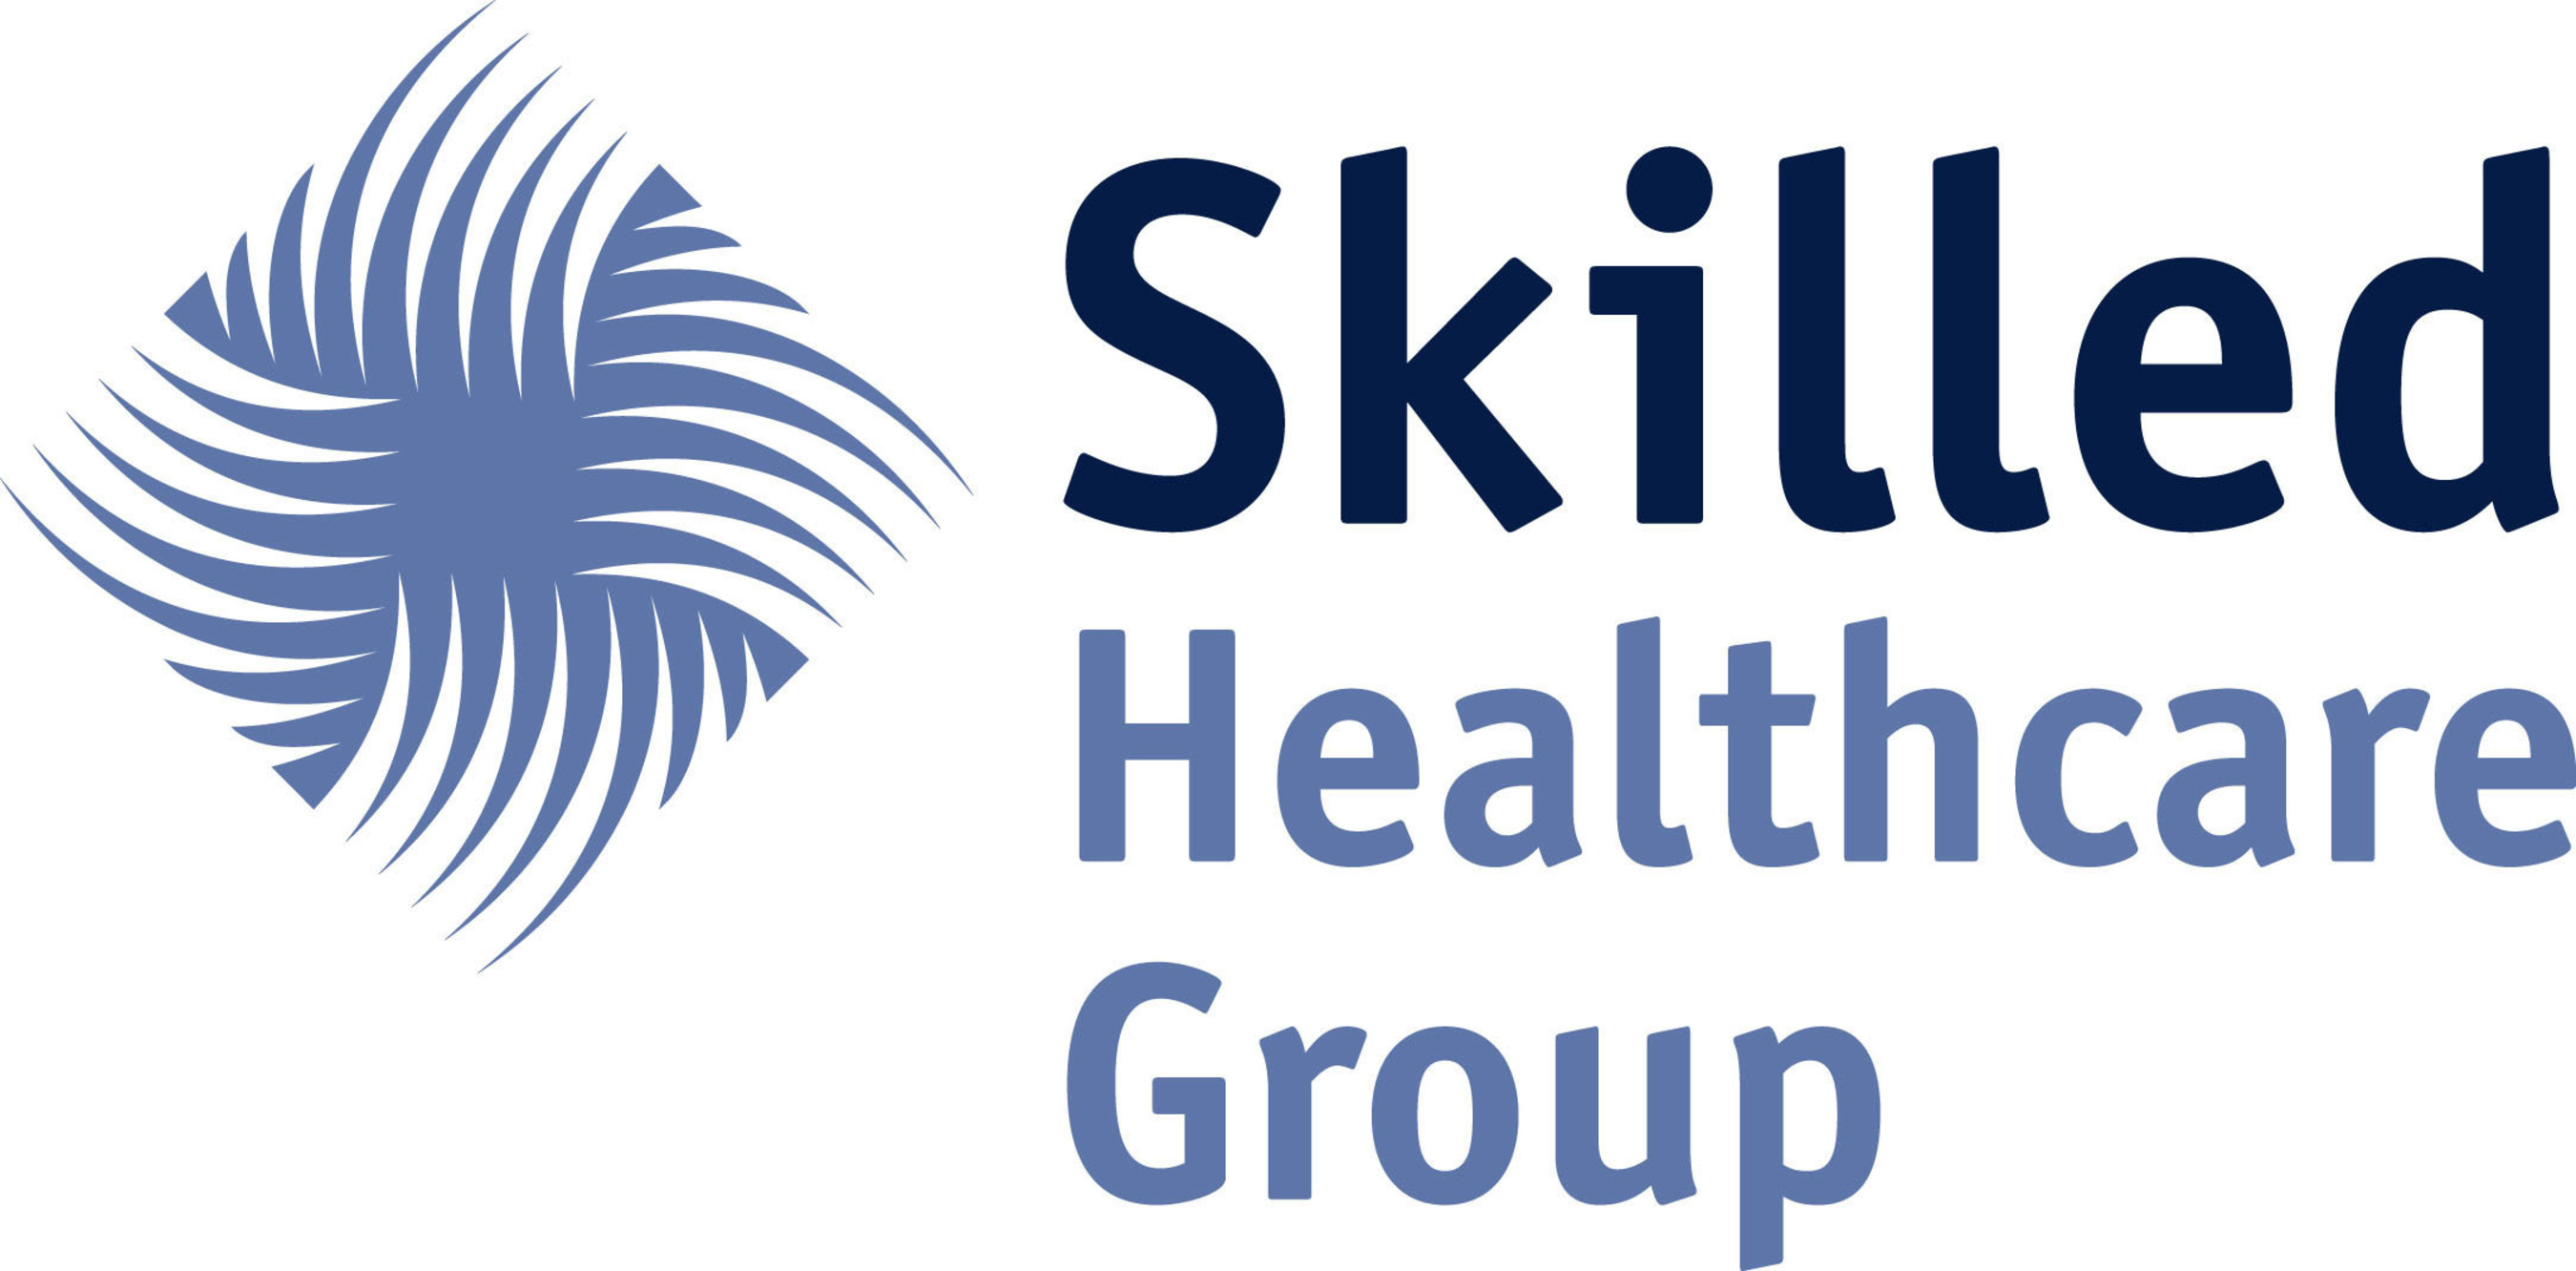 Skilled Healthcare Group And Genesis Healthcare To Present